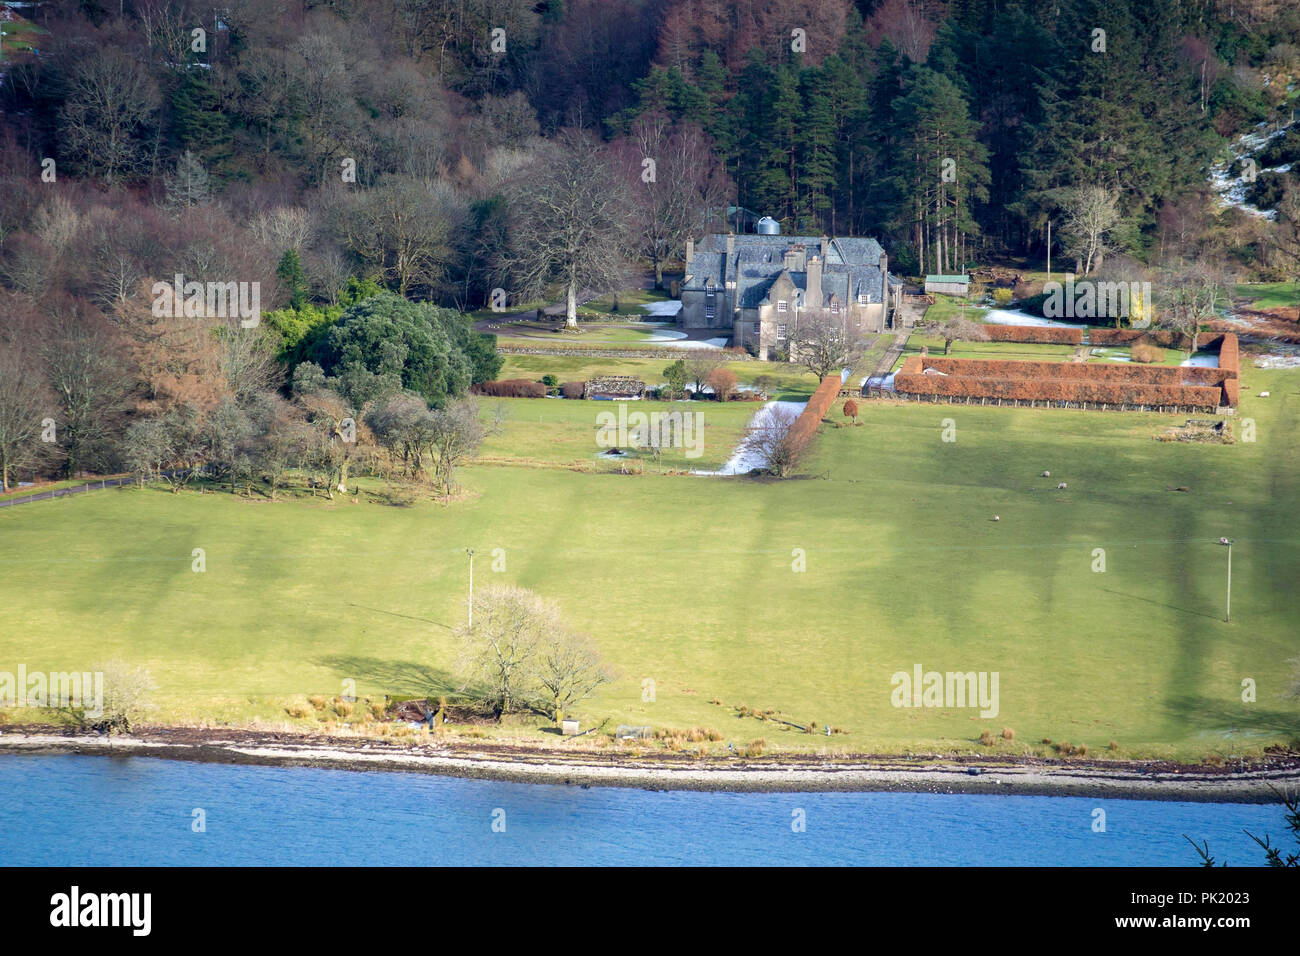 Ardtaraig House Ardtaraig Estate Glen Lean Loch Striven near Dunoon Argyll Scotland U.K. exterior view traditional 17th century scots revival two stor - Stock Image